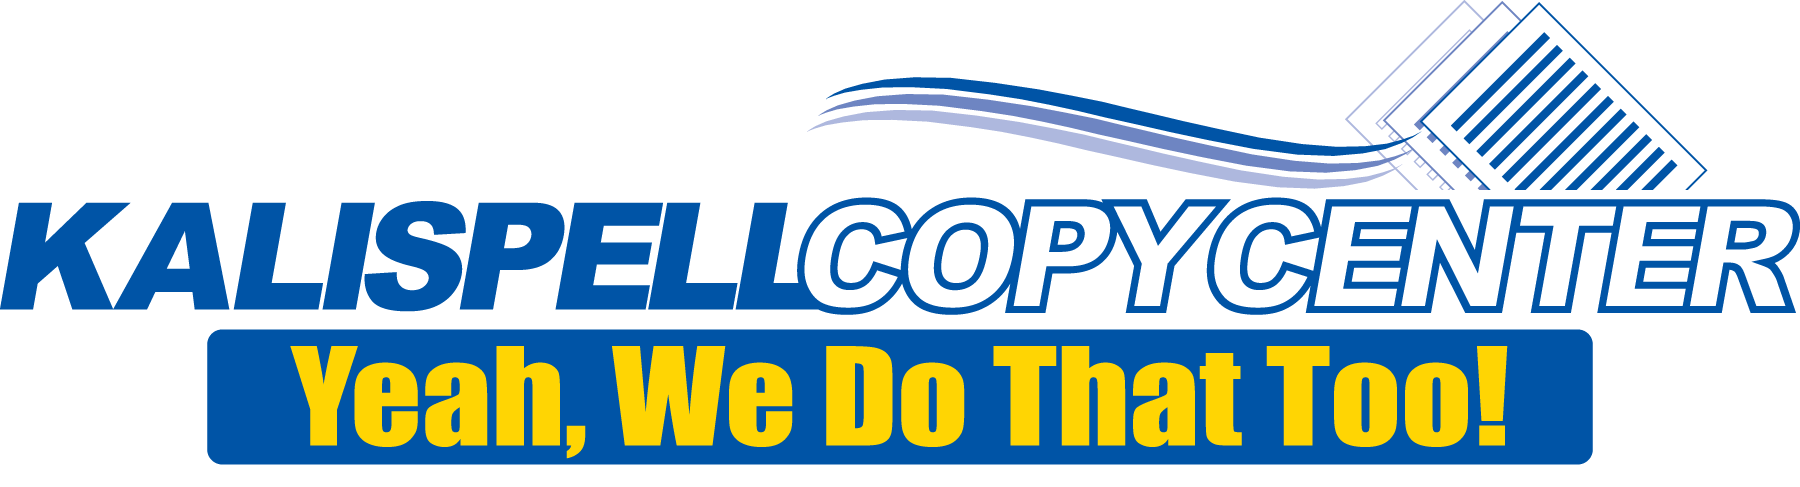 Kalispell Copy Center - Yeah, We Do That Too!